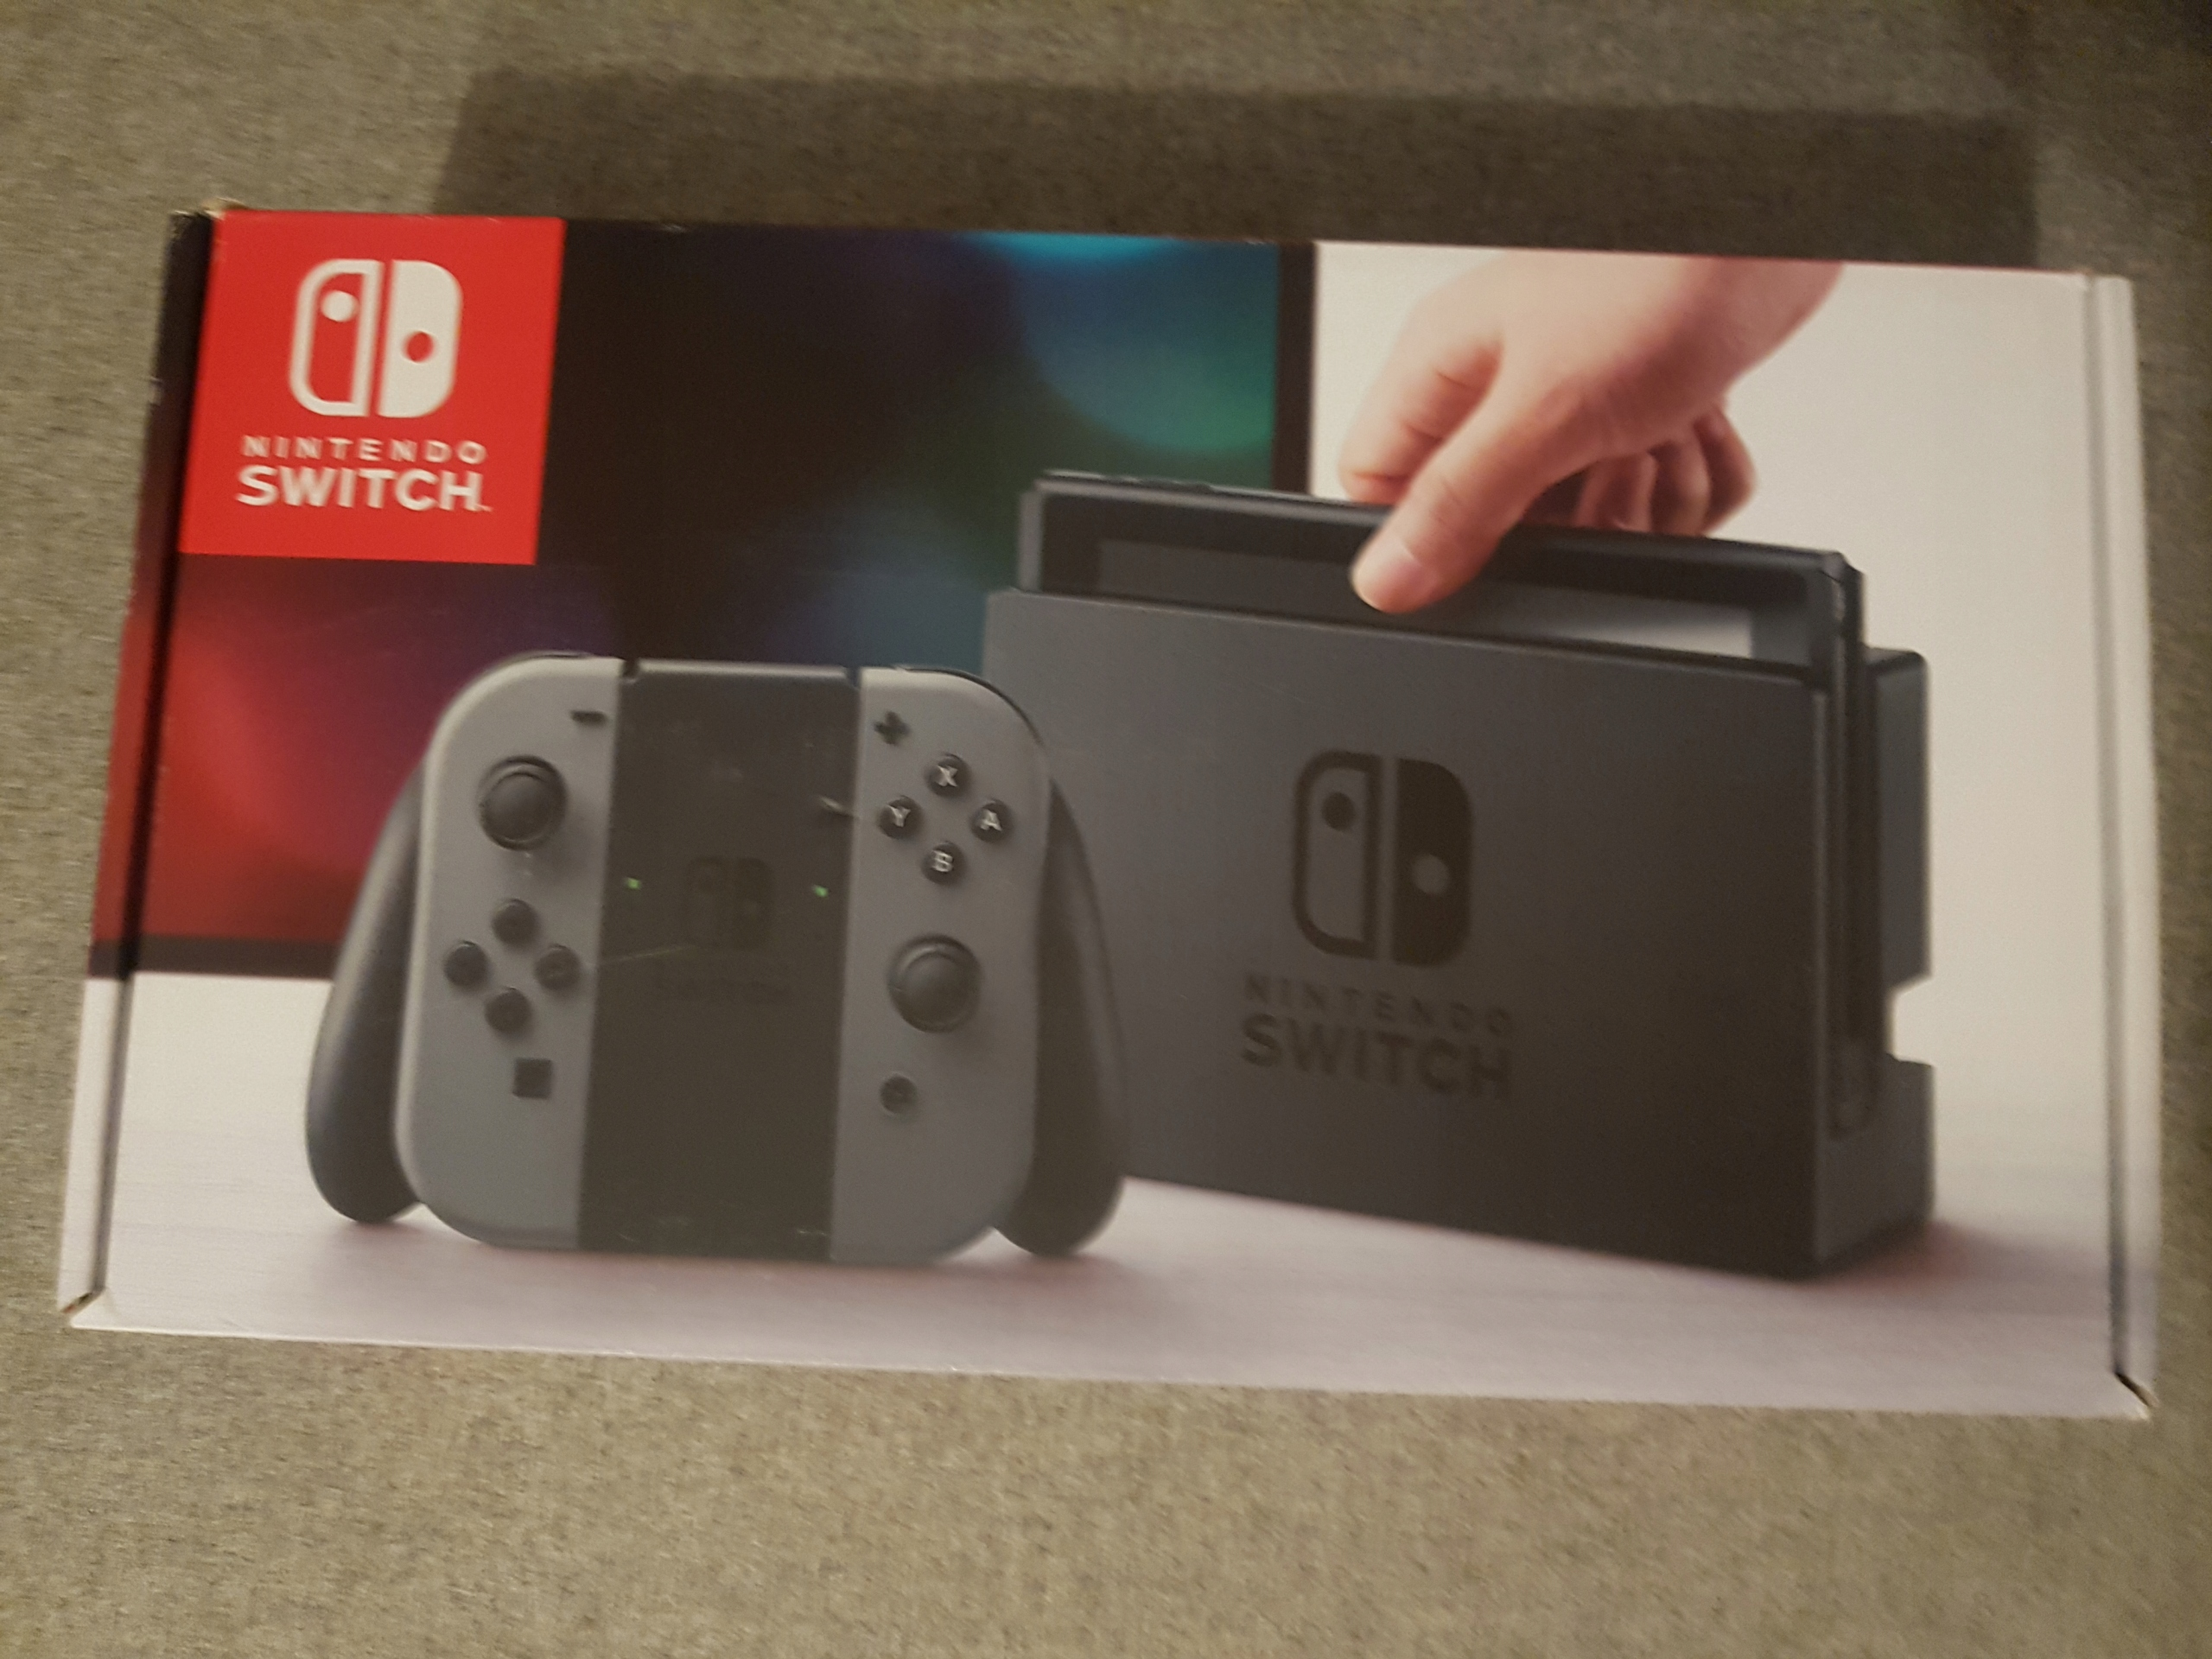 Nintendo Switch konsola komplet! Idealna!